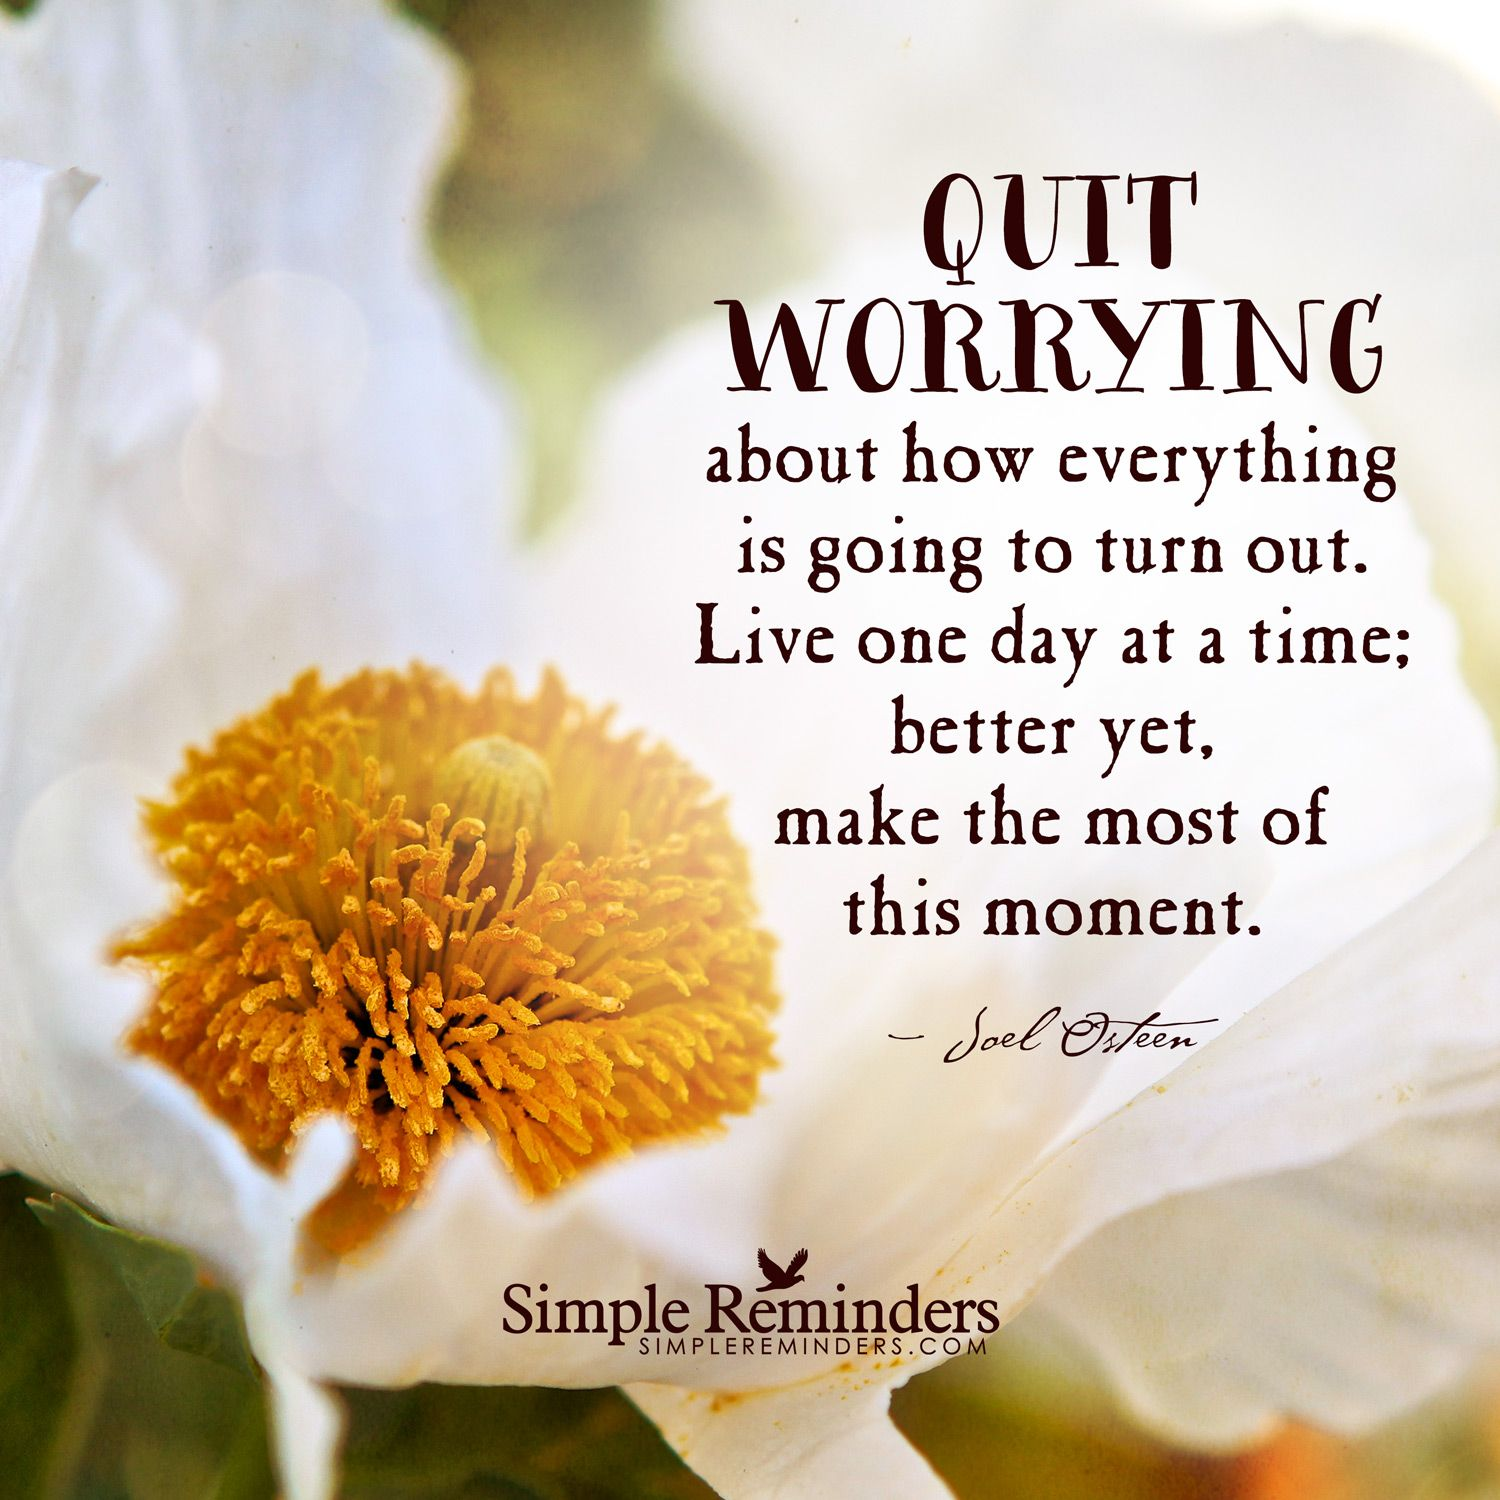 Quit worrying about how everything is going to turn out. Live one